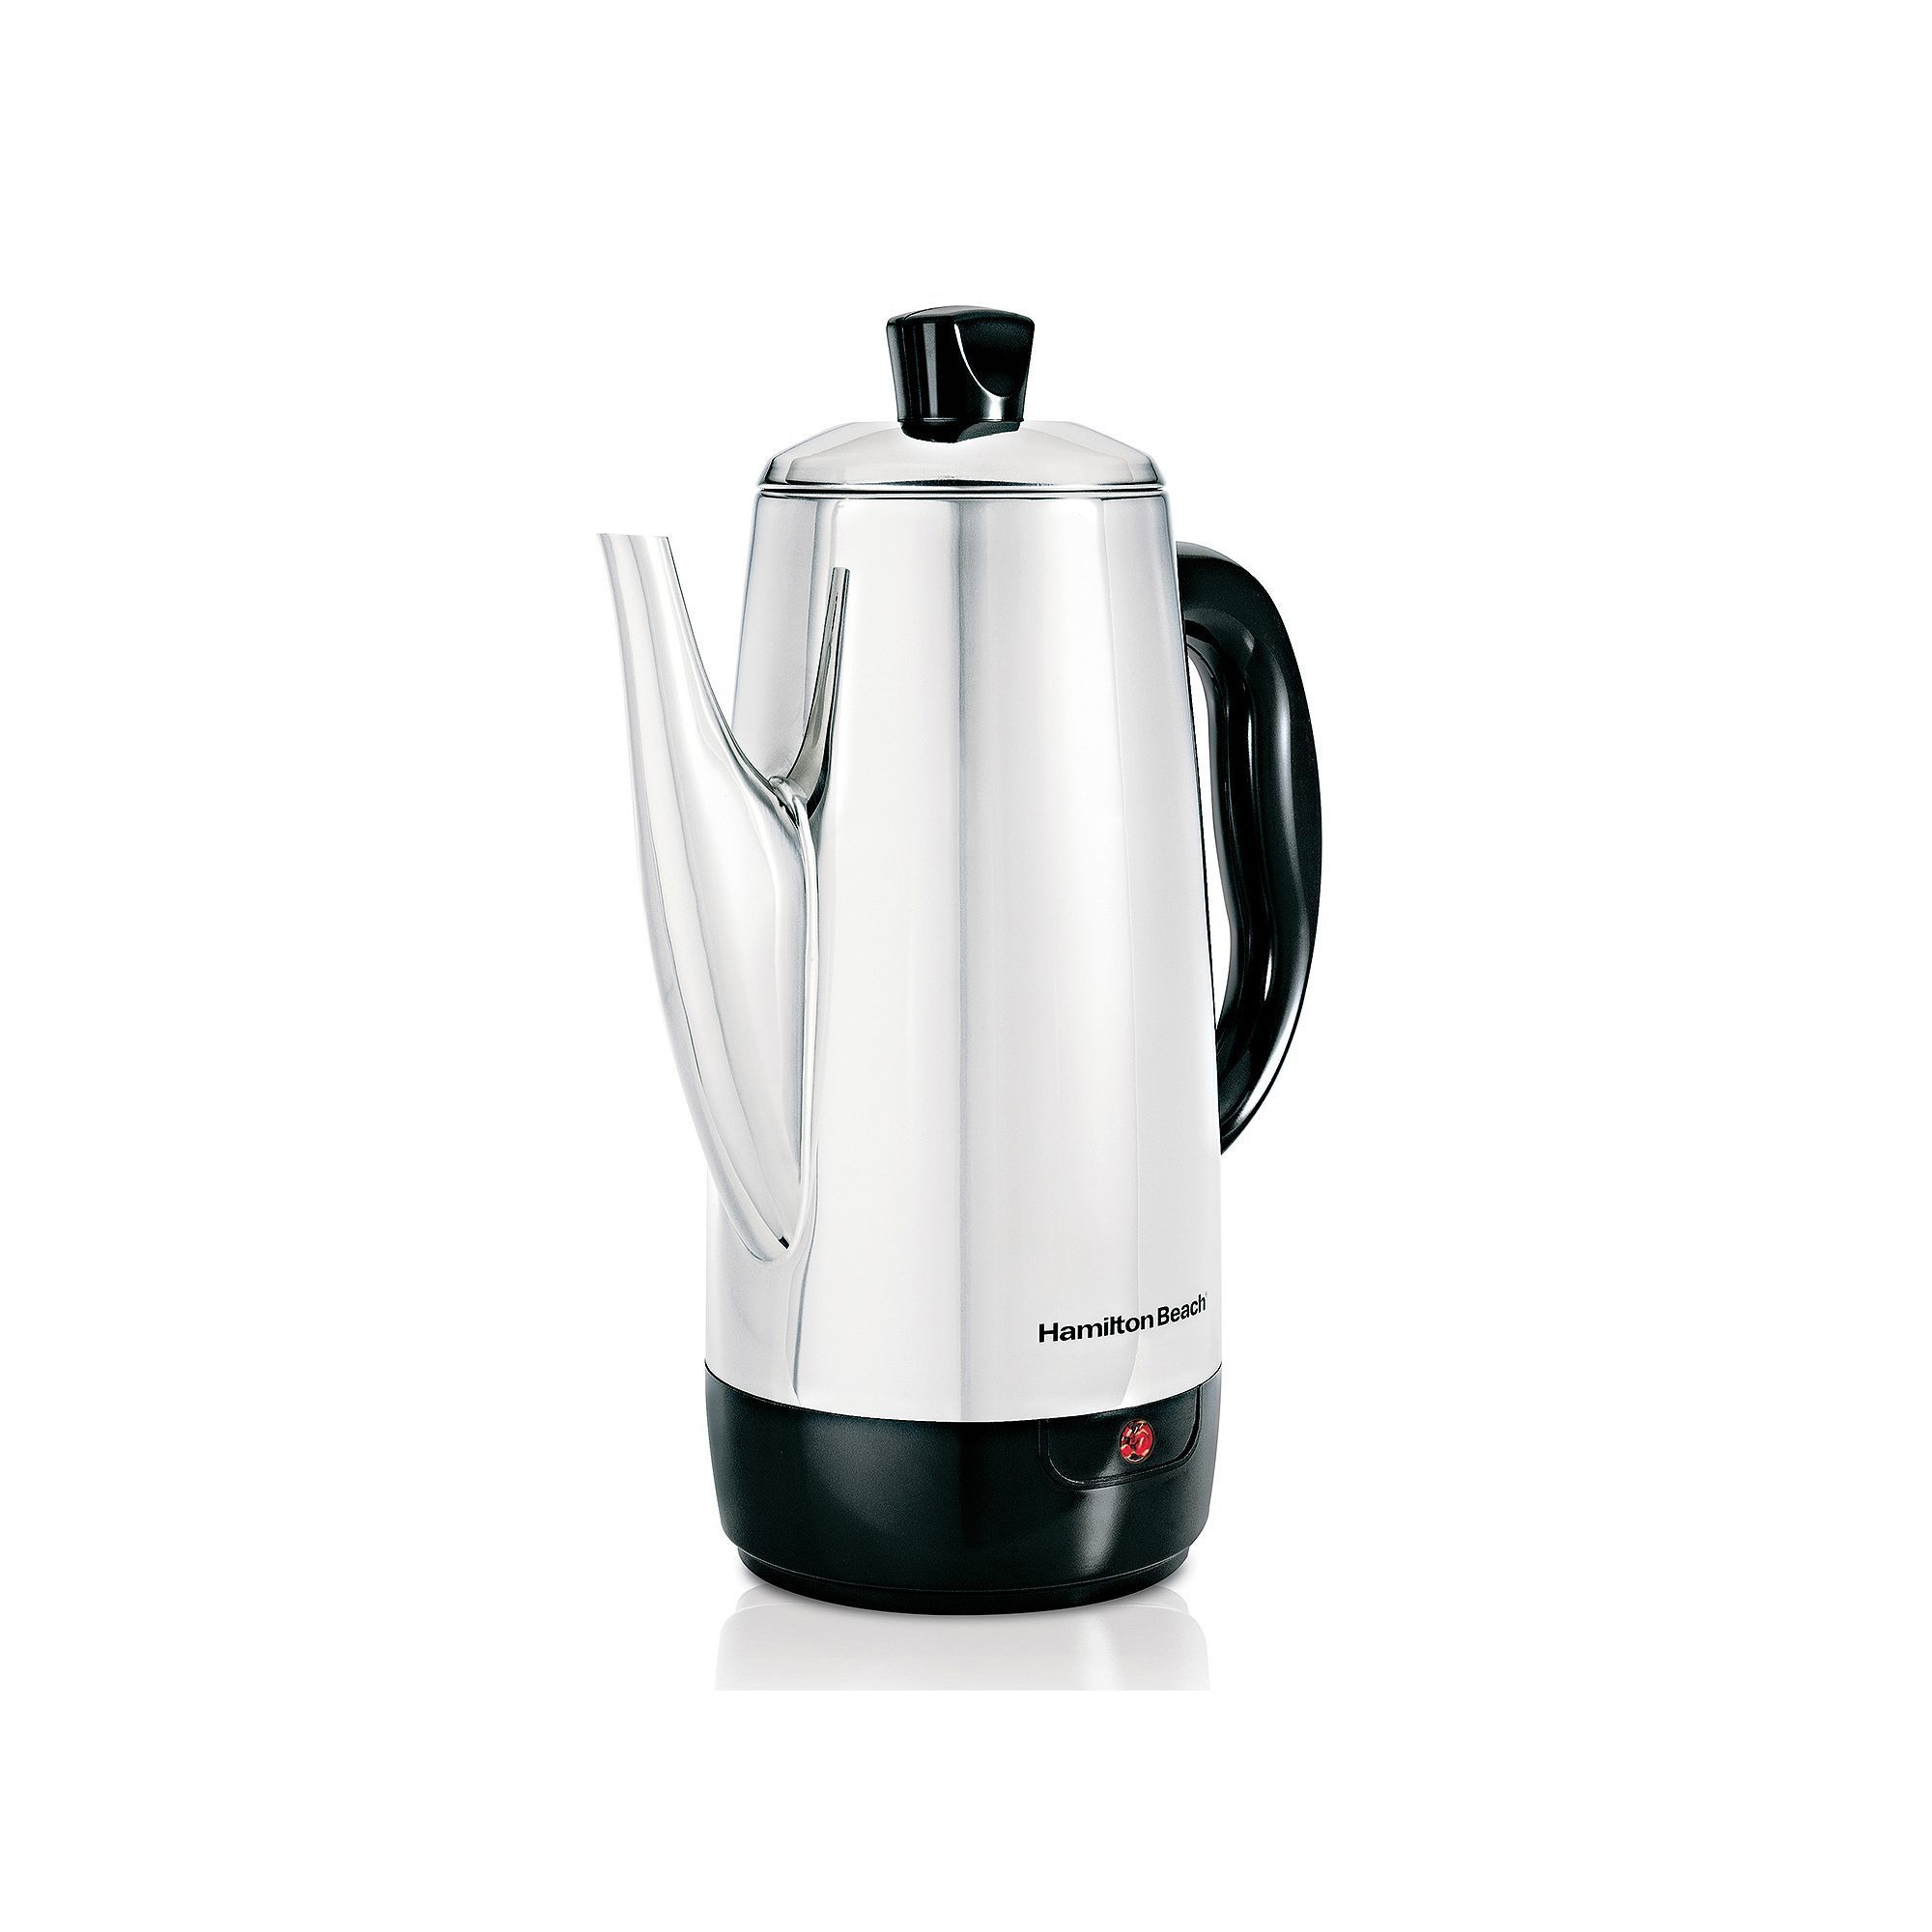 Hamilton Beach 12Cup Electric Percolator Coffee brewer